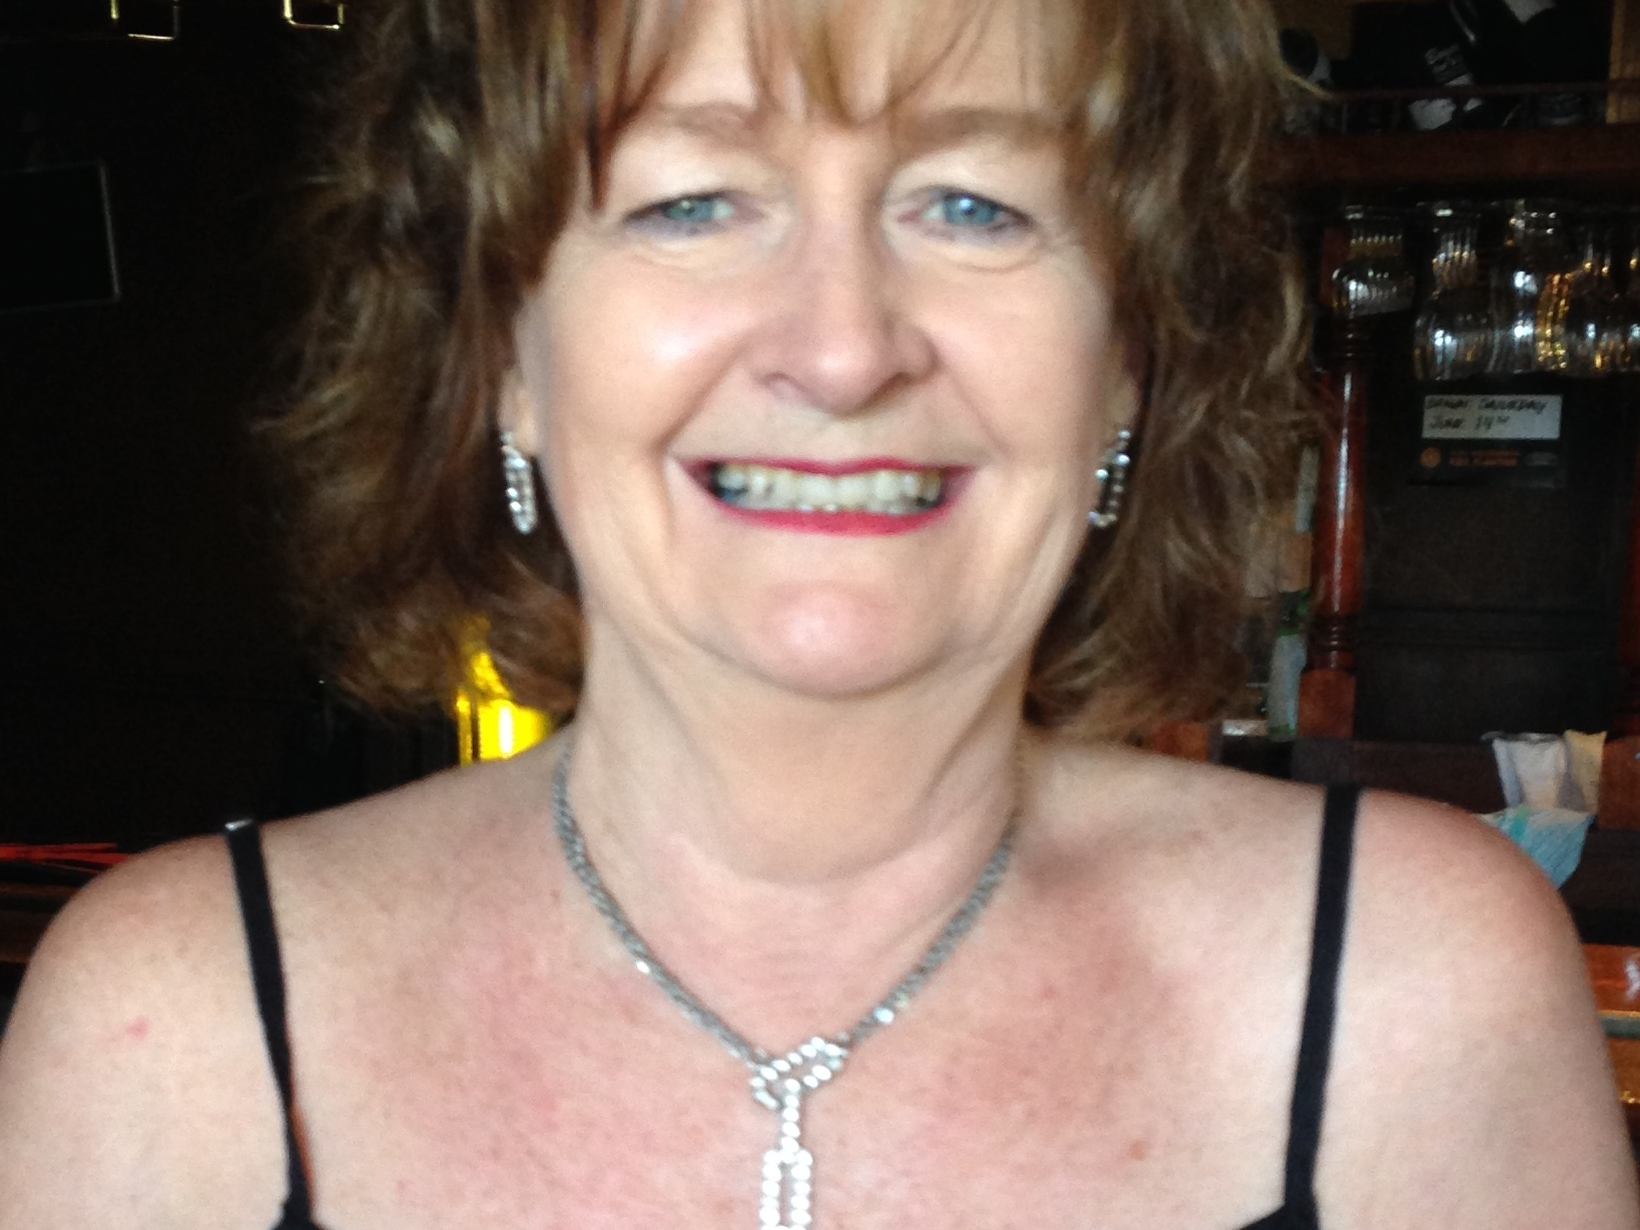 Frances from Palmerston, Northern Territory, Australia